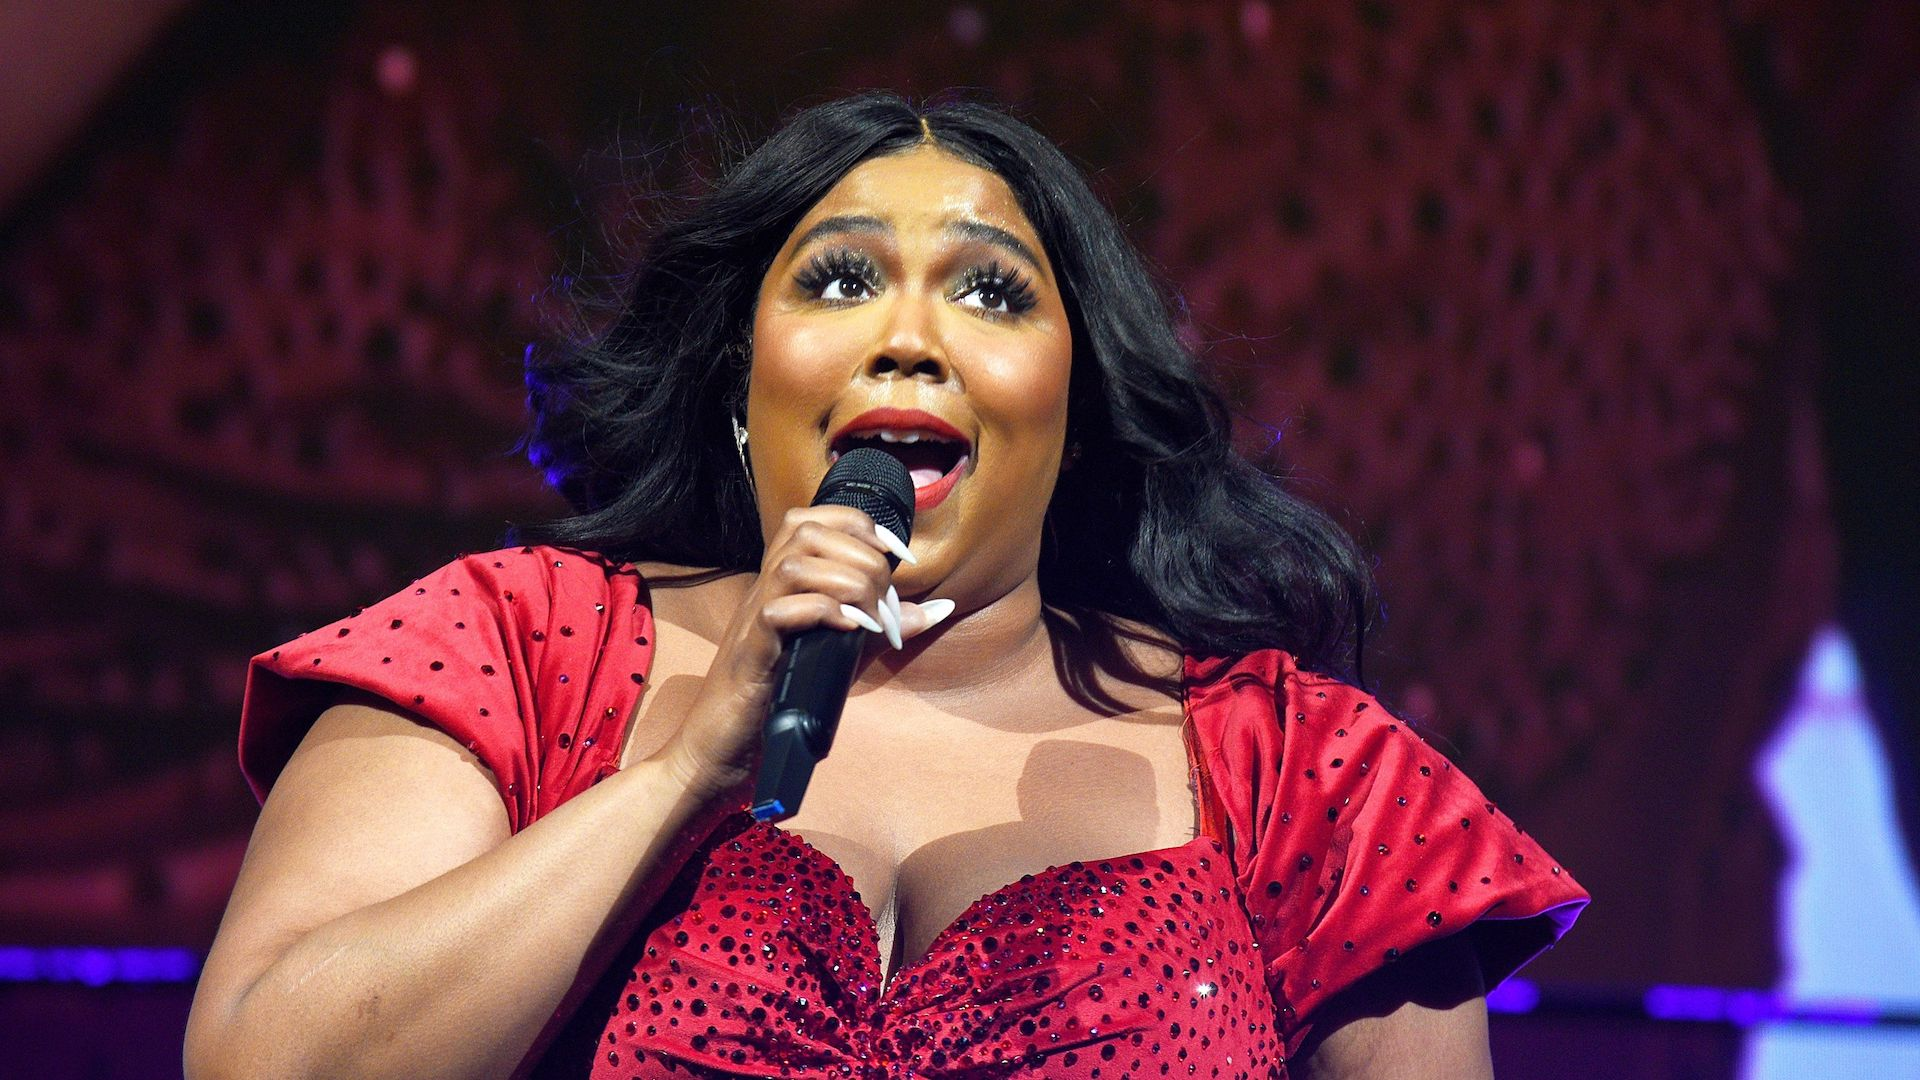 Happy Holidays to Lizzo in This Sparkly Red Bodysuit and No One Else